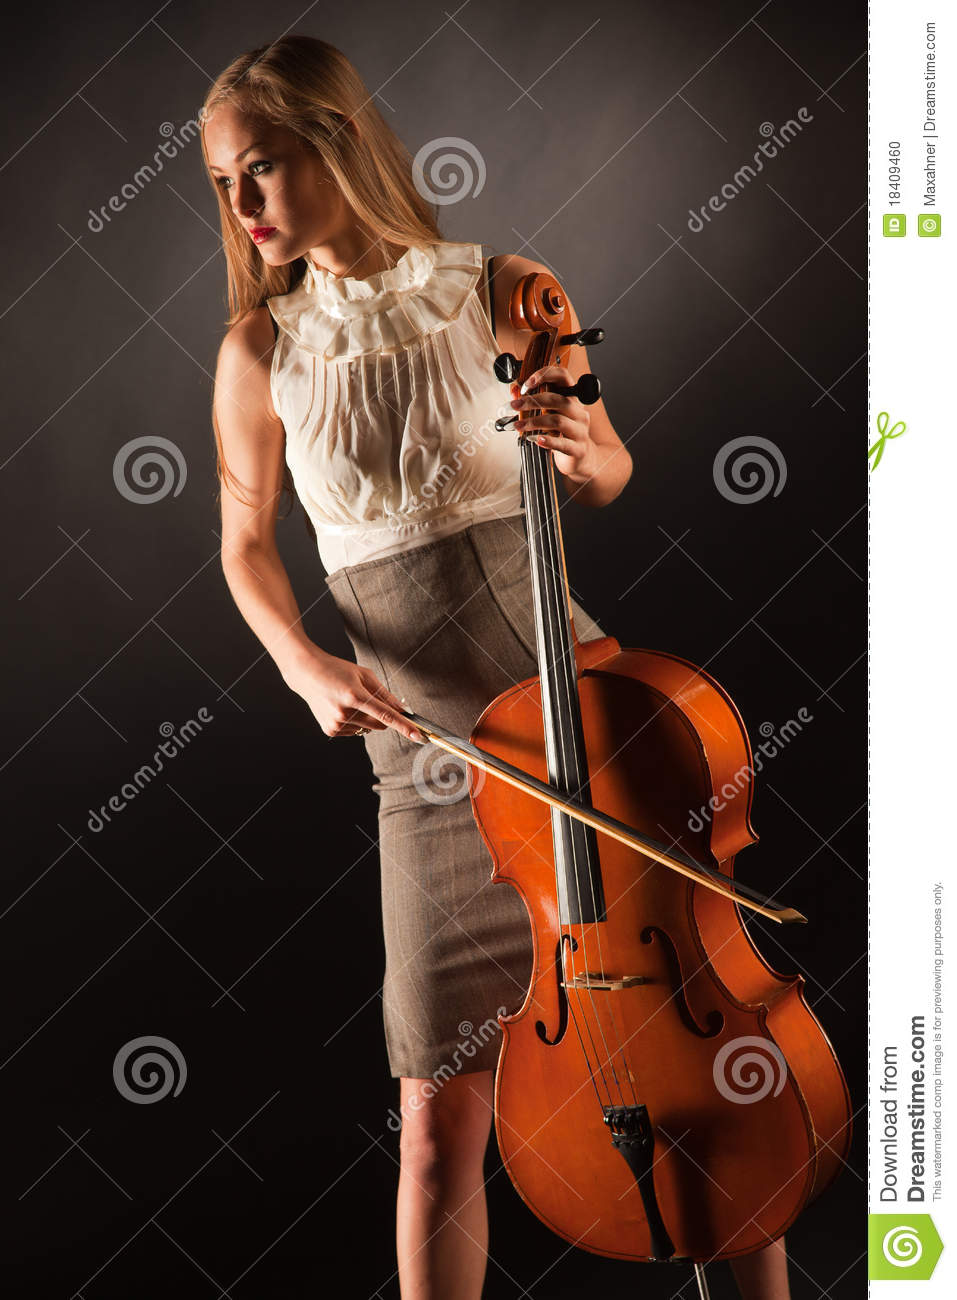 Playing On Cello Girl Stock Photo - Image: 18409460